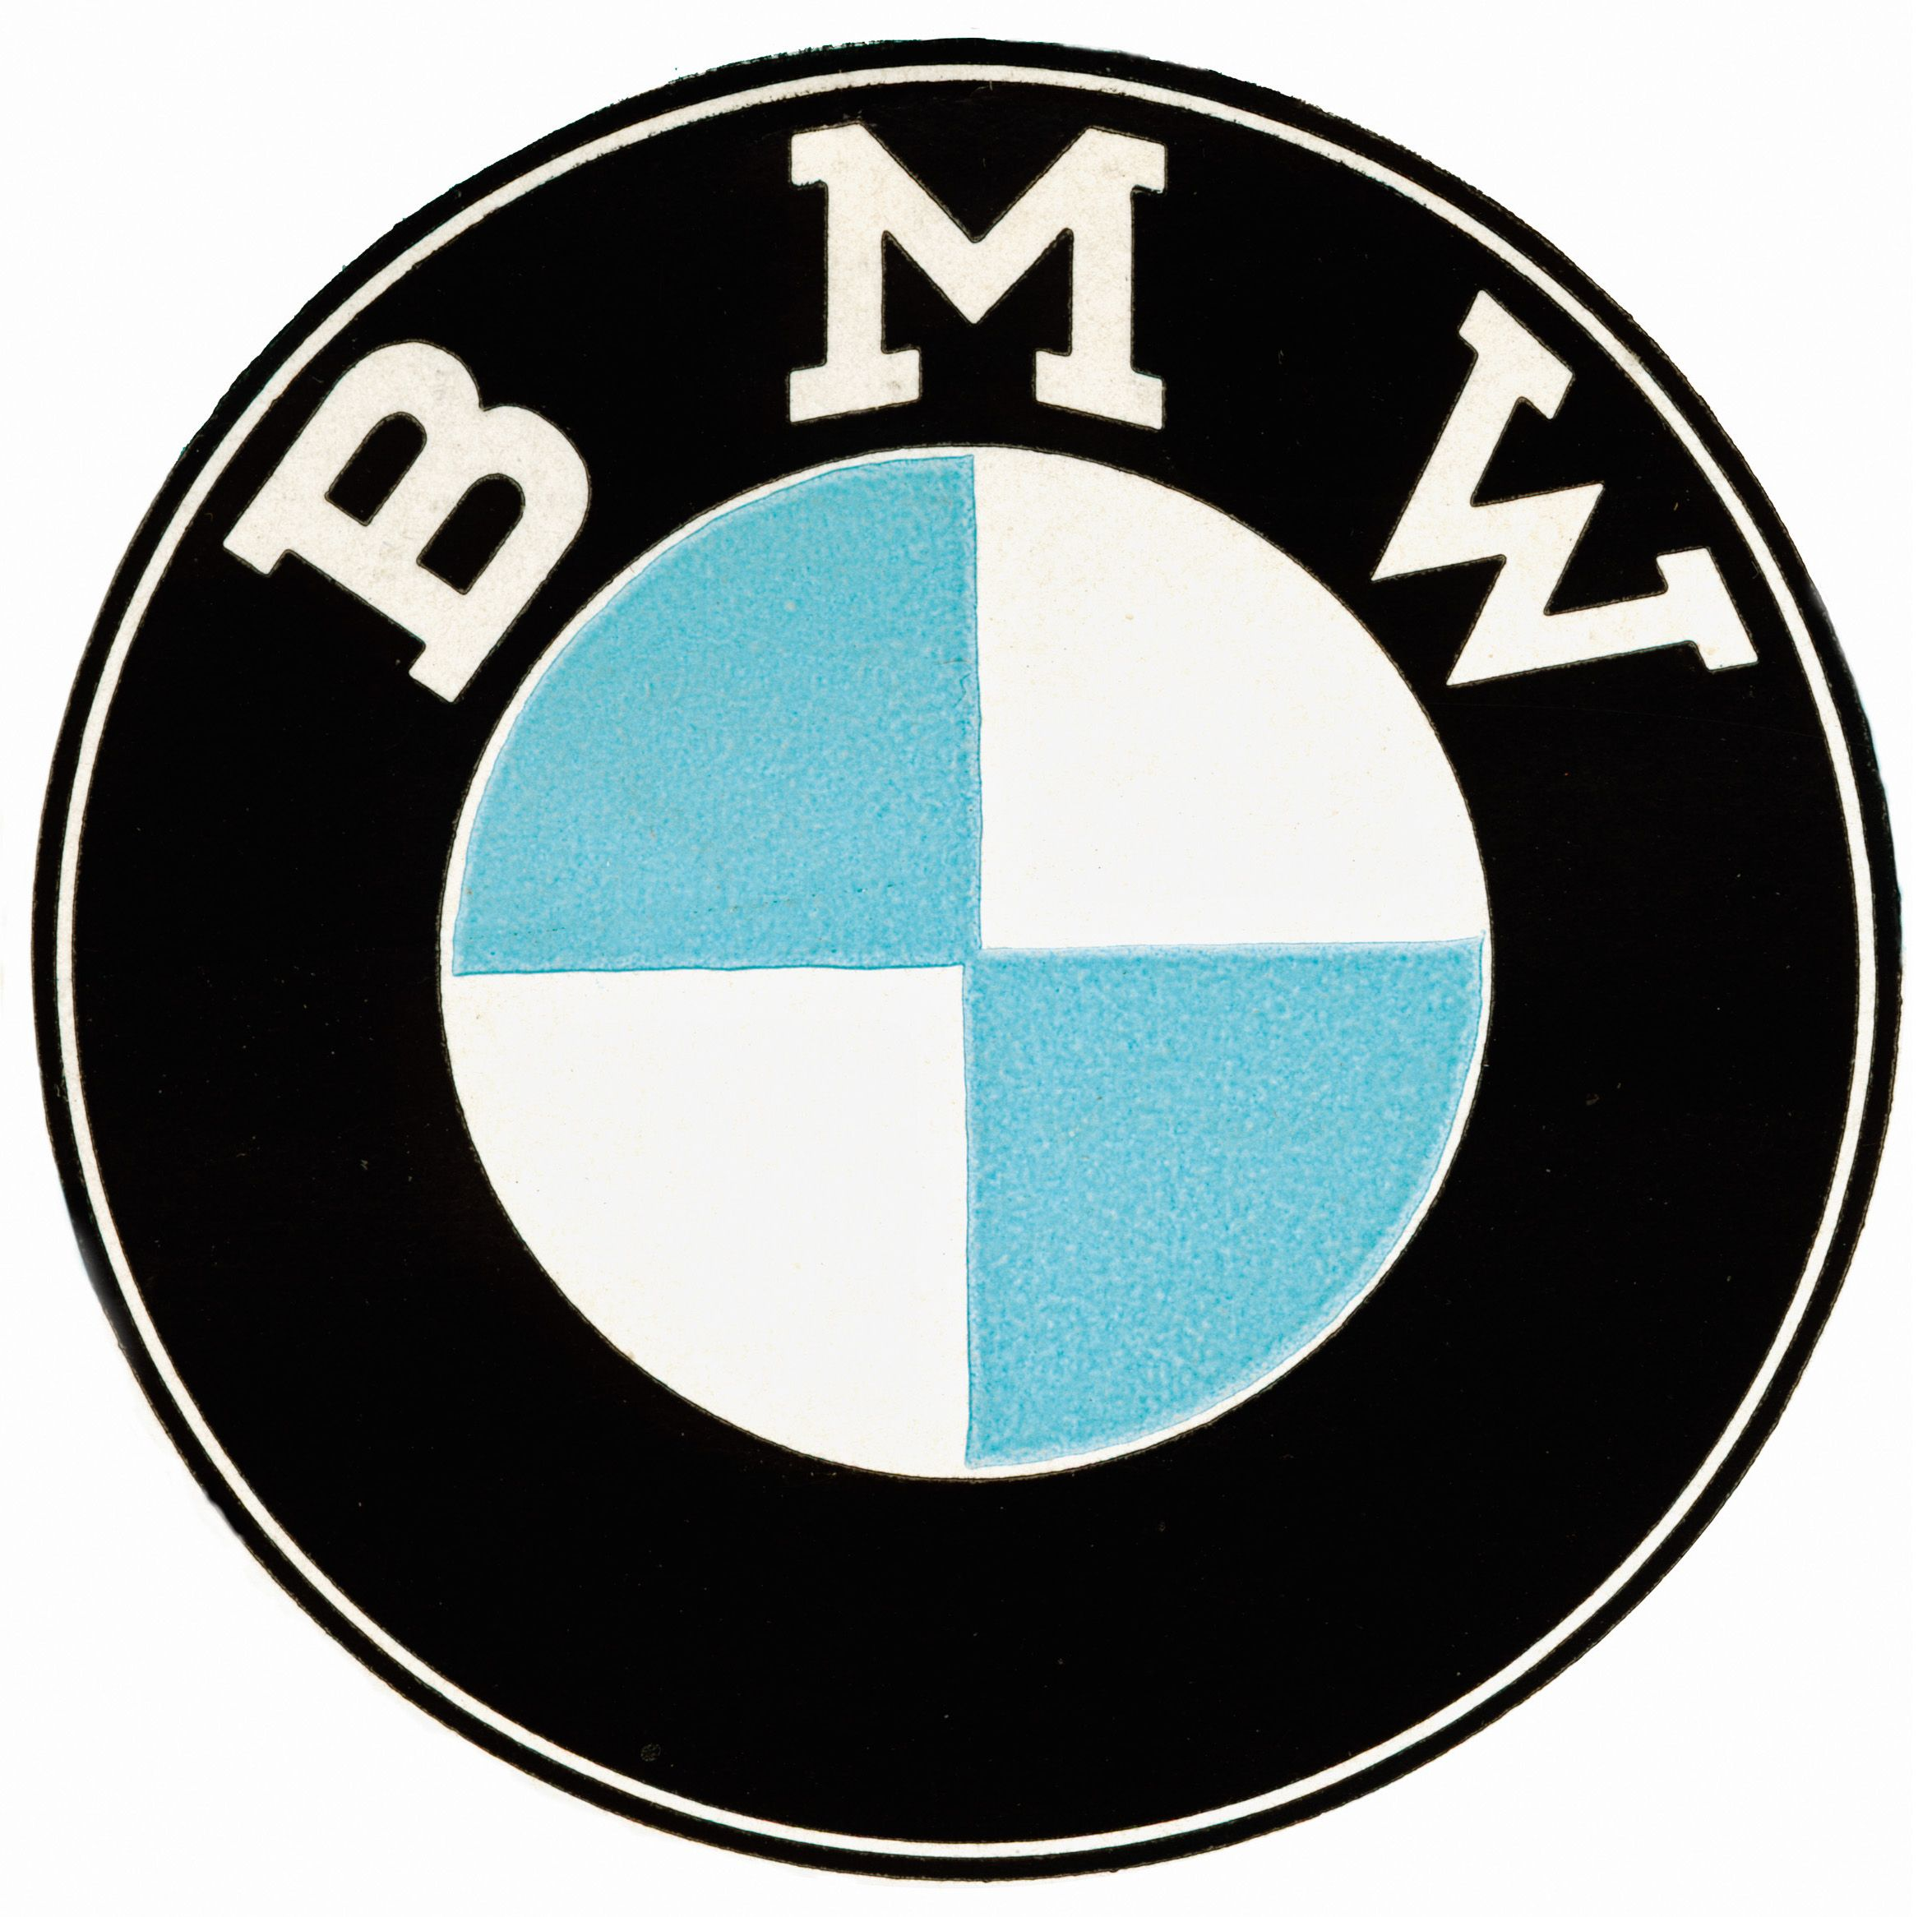 marca bmw 1936 30 39 s logos pinterest bmw and cars. Black Bedroom Furniture Sets. Home Design Ideas